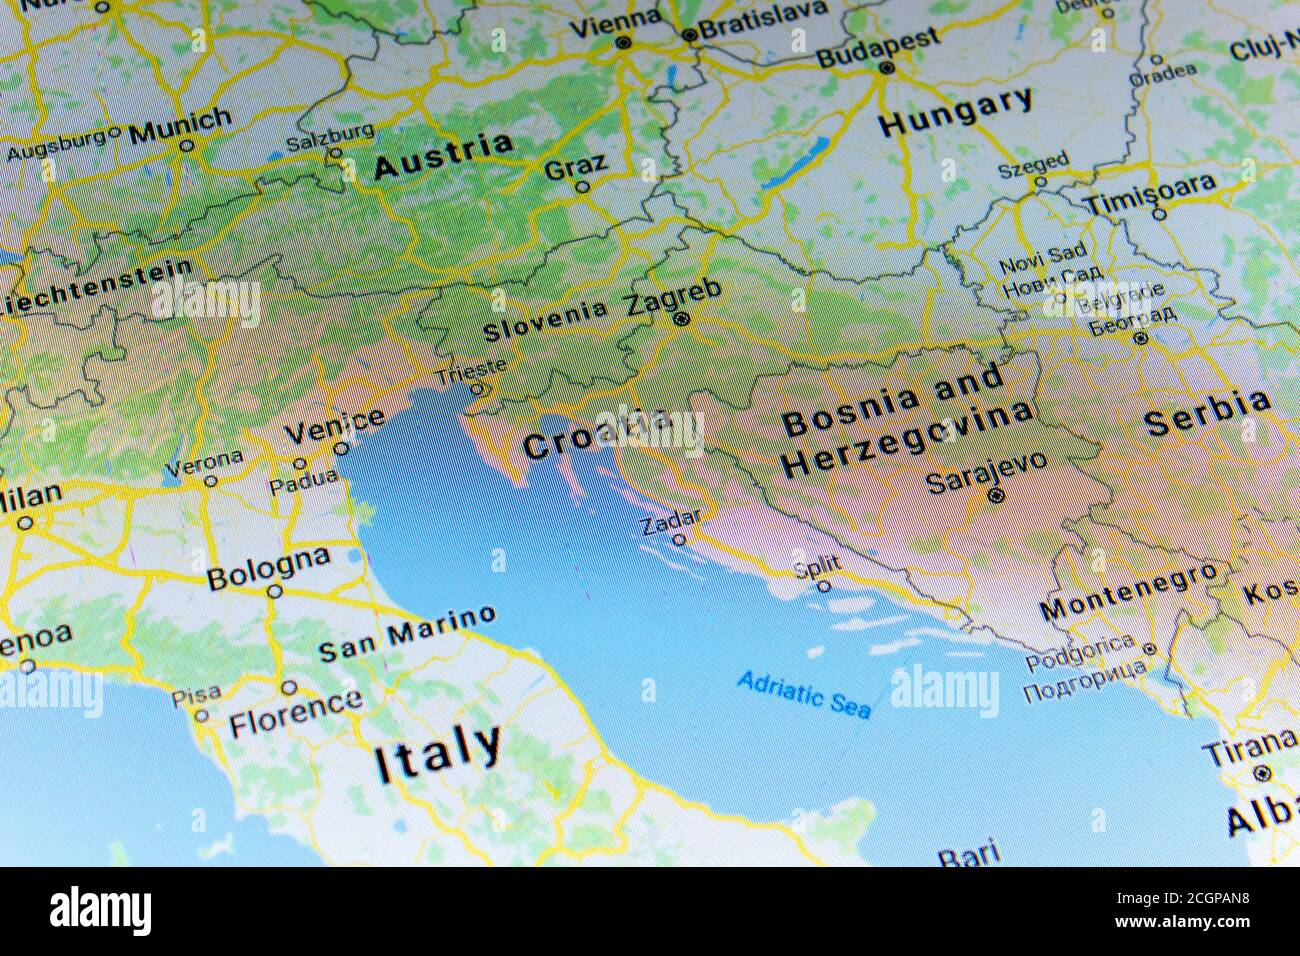 Croatia Maps High Resolution Stock Photography And Images Alamy